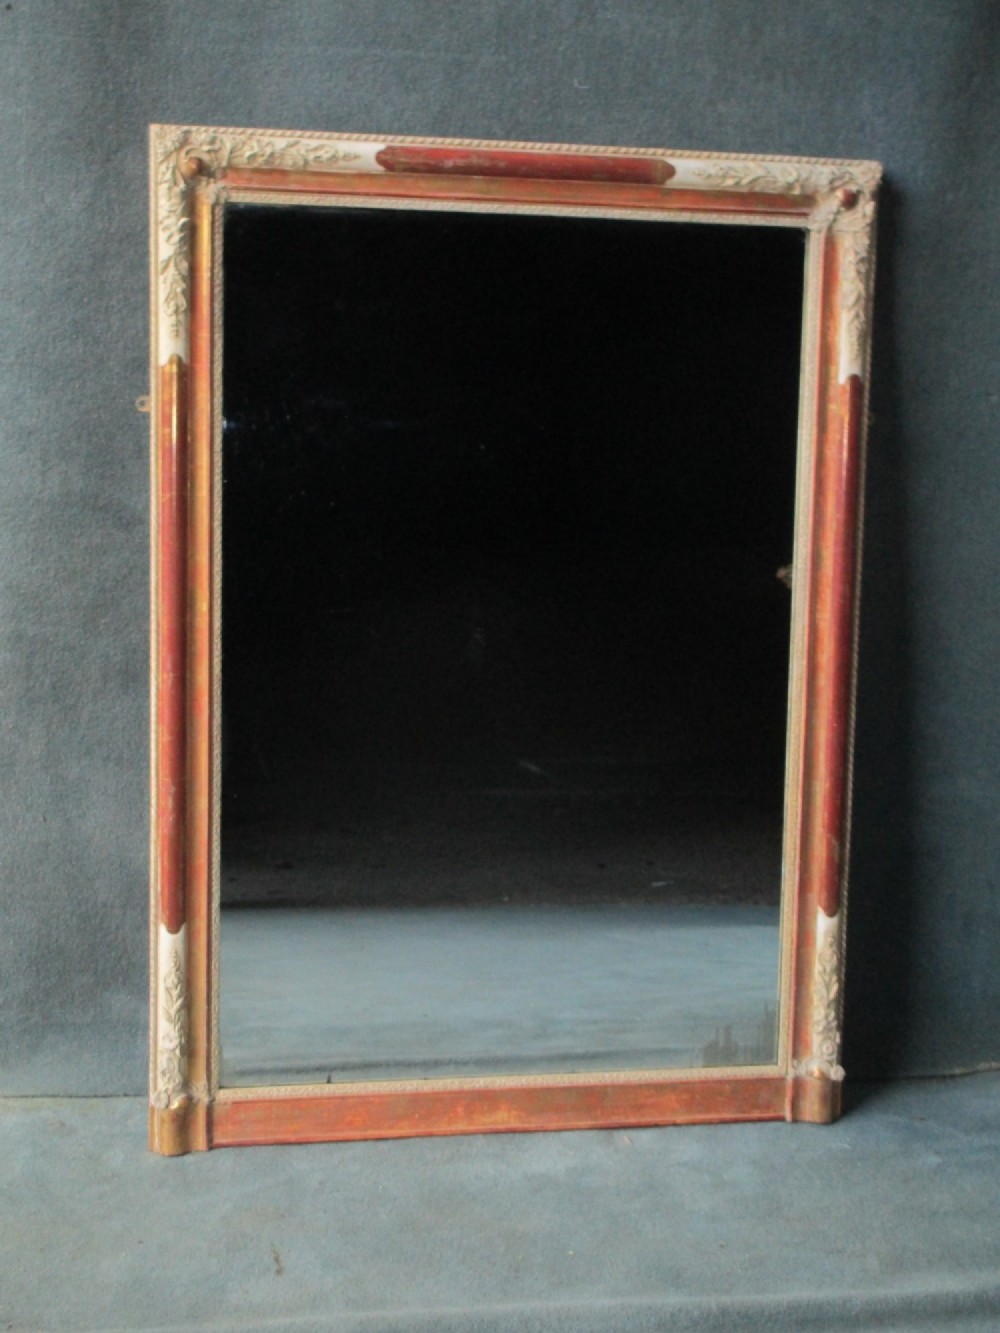 french portrait overmantle mirror a250k700